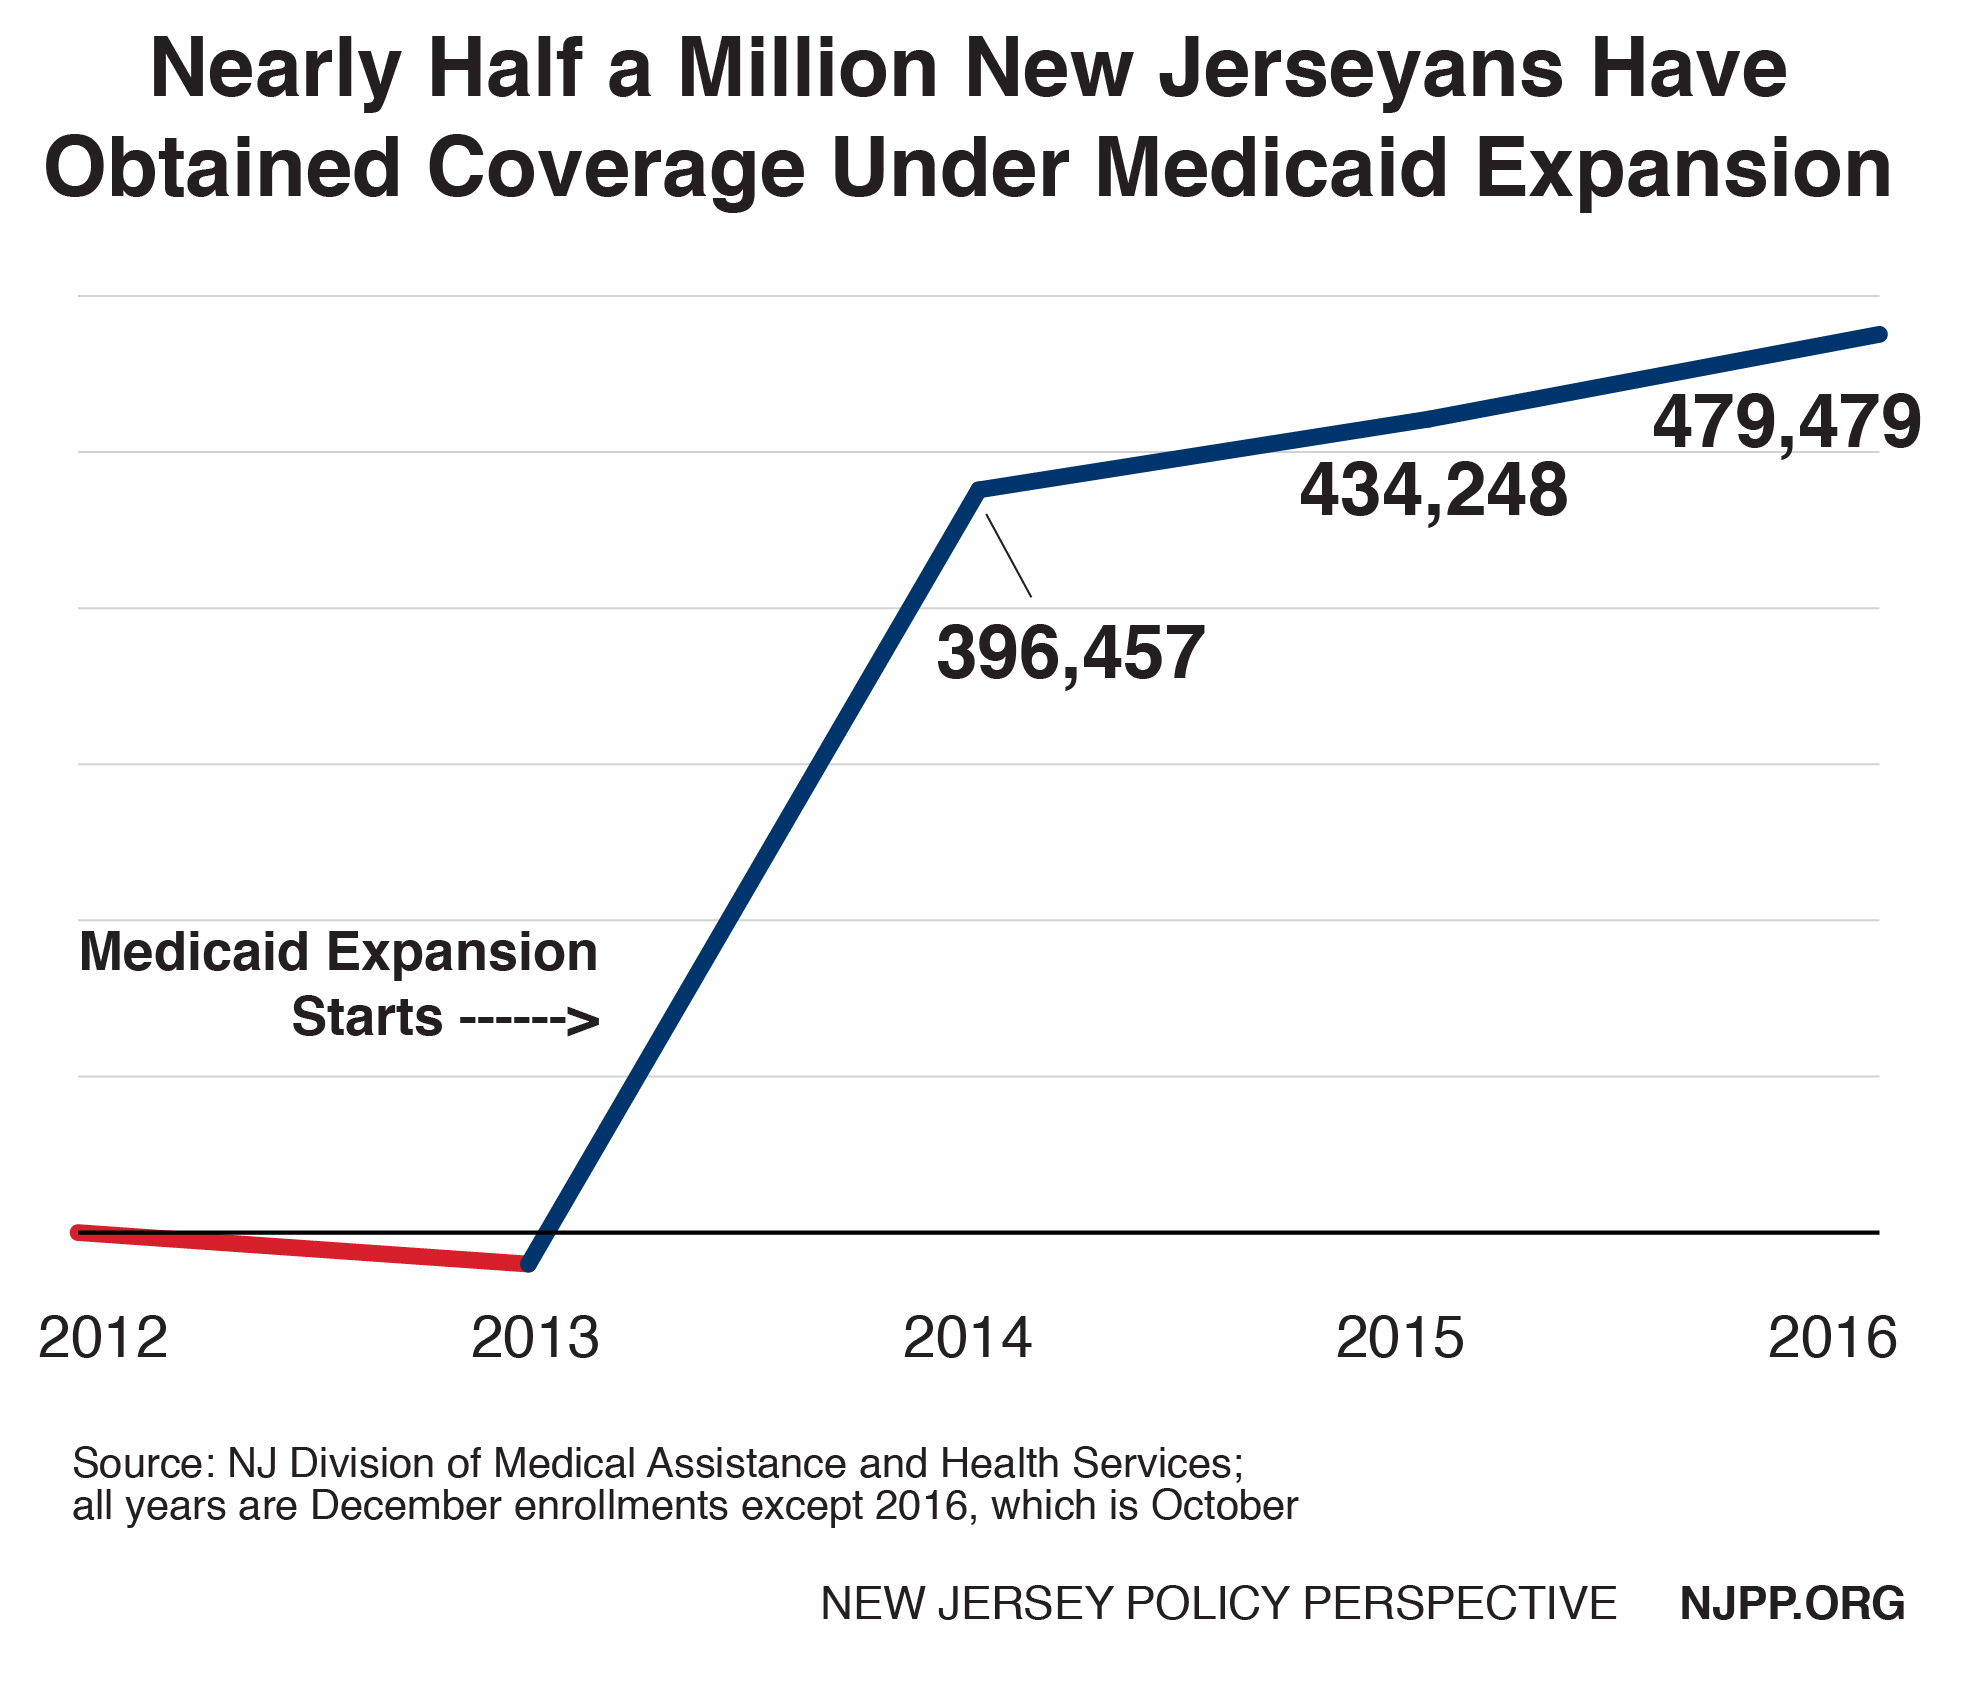 Nj familycare application nj - Nj Medicaid Enrollees Credit Njpp